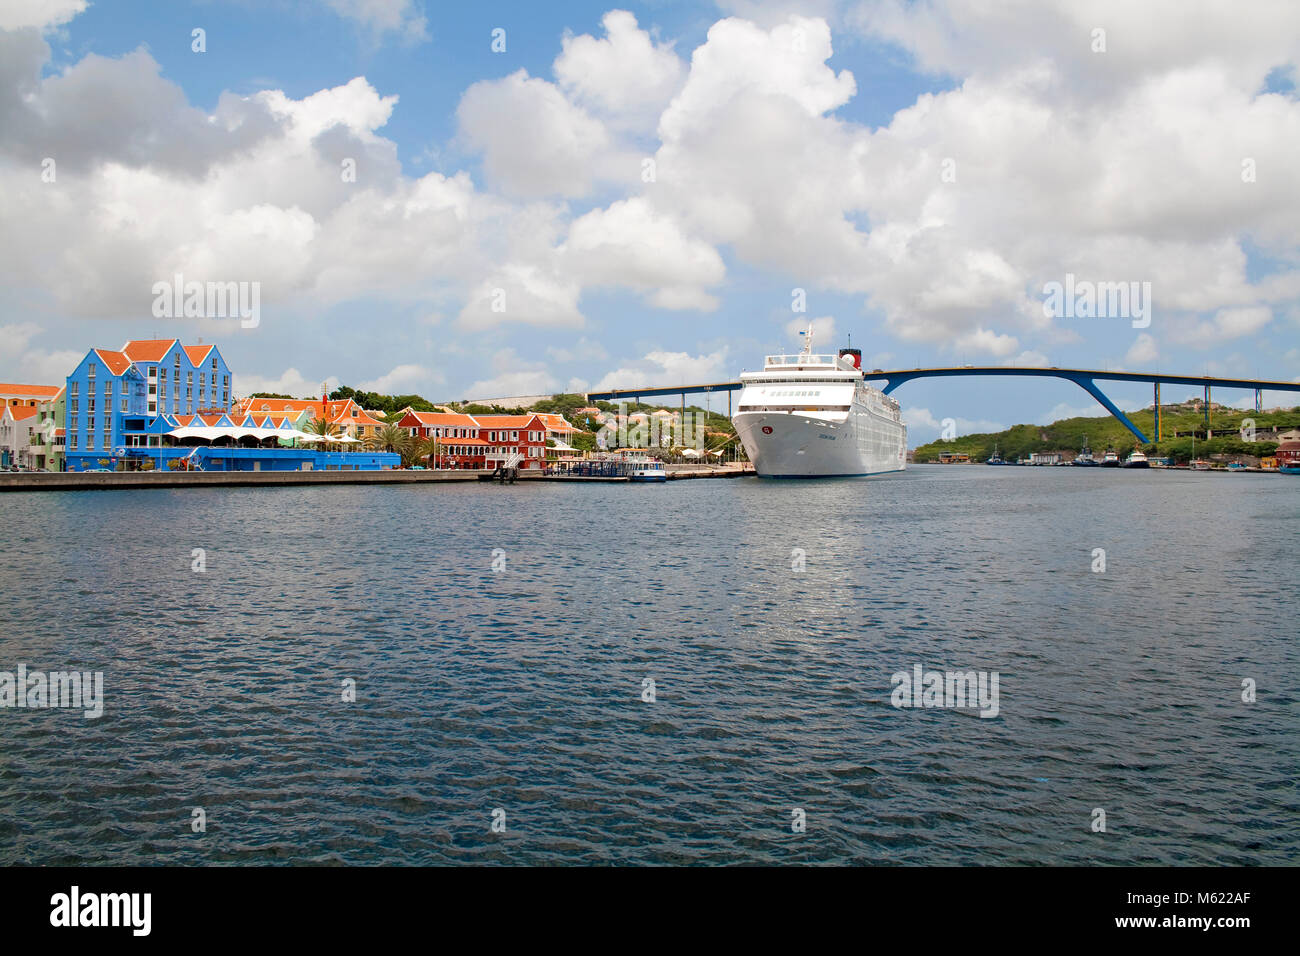 Cruise ship at Sint Anna Baai, Otrobanda district, Queen-Juliana bridge, Willemstad, Curacao, Netherlands Antilles, - Stock Image